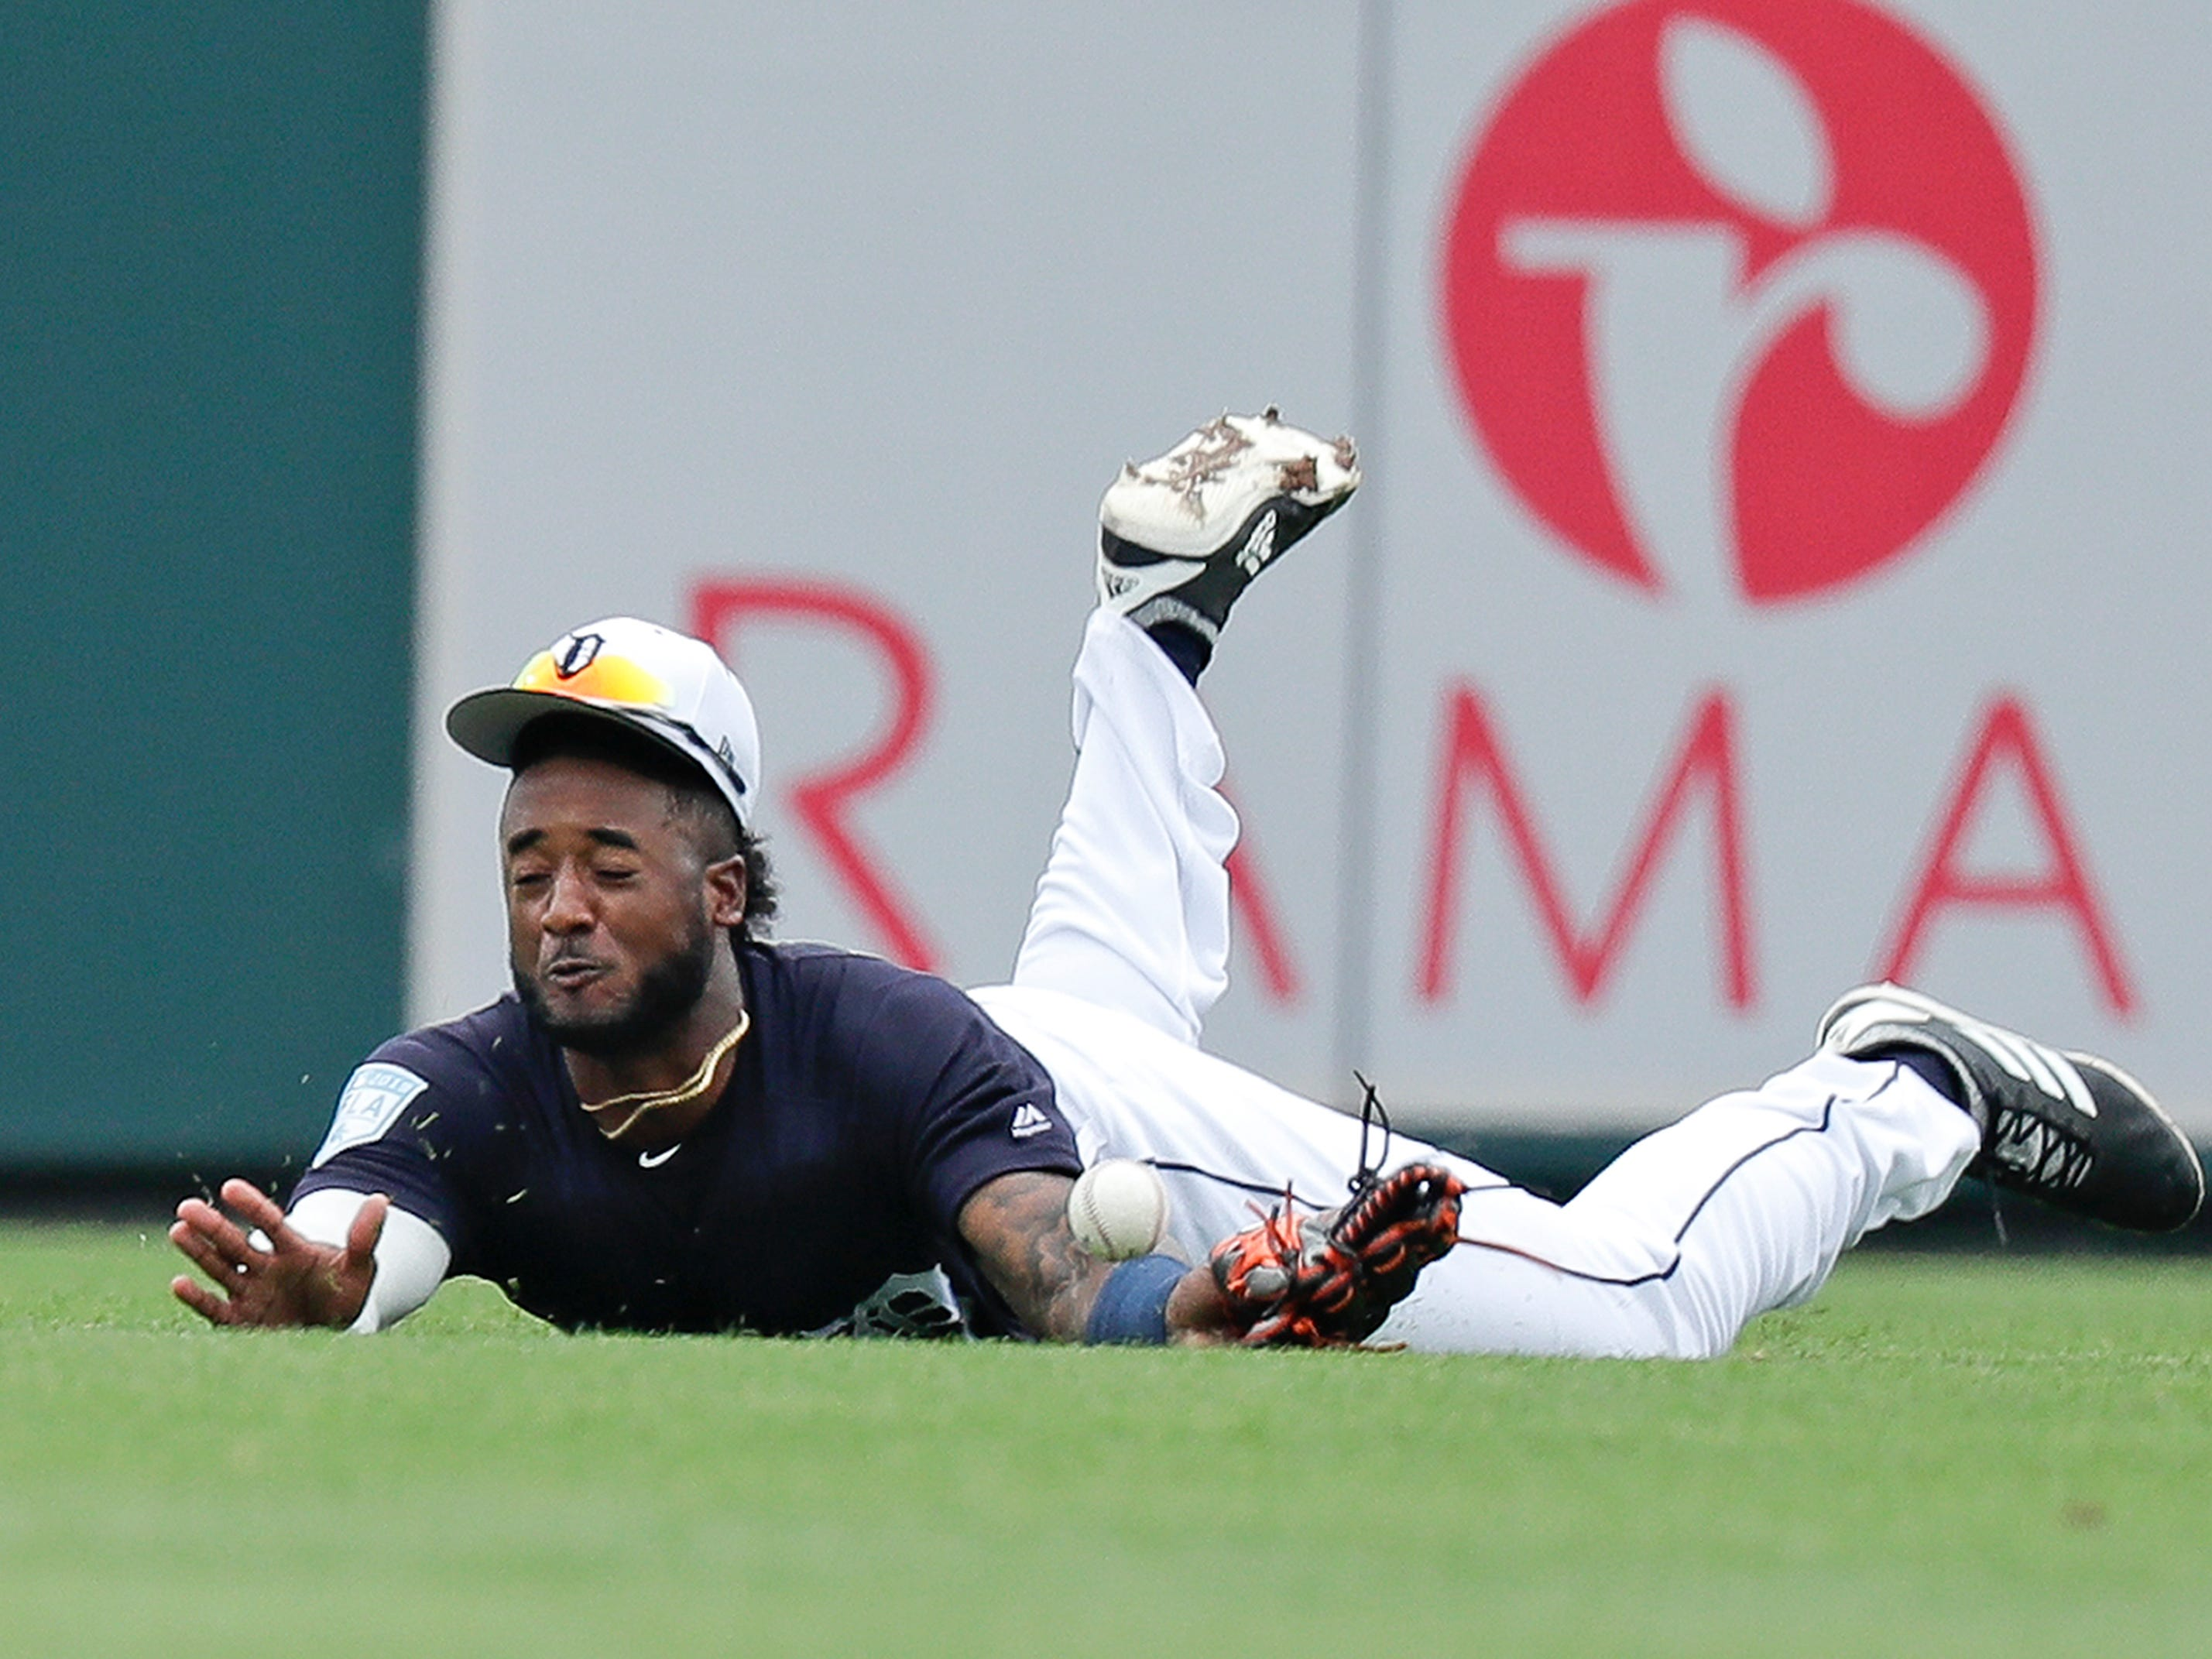 Detroit Tigers center fielder Niko Goodrum dives but can't make a catch on a base hit by Toronto Blue Jays Danny Jansen in the second inning of a spring baseball exhibition game, Tuesday, March 5, 2019, in Lakeland, Fla.